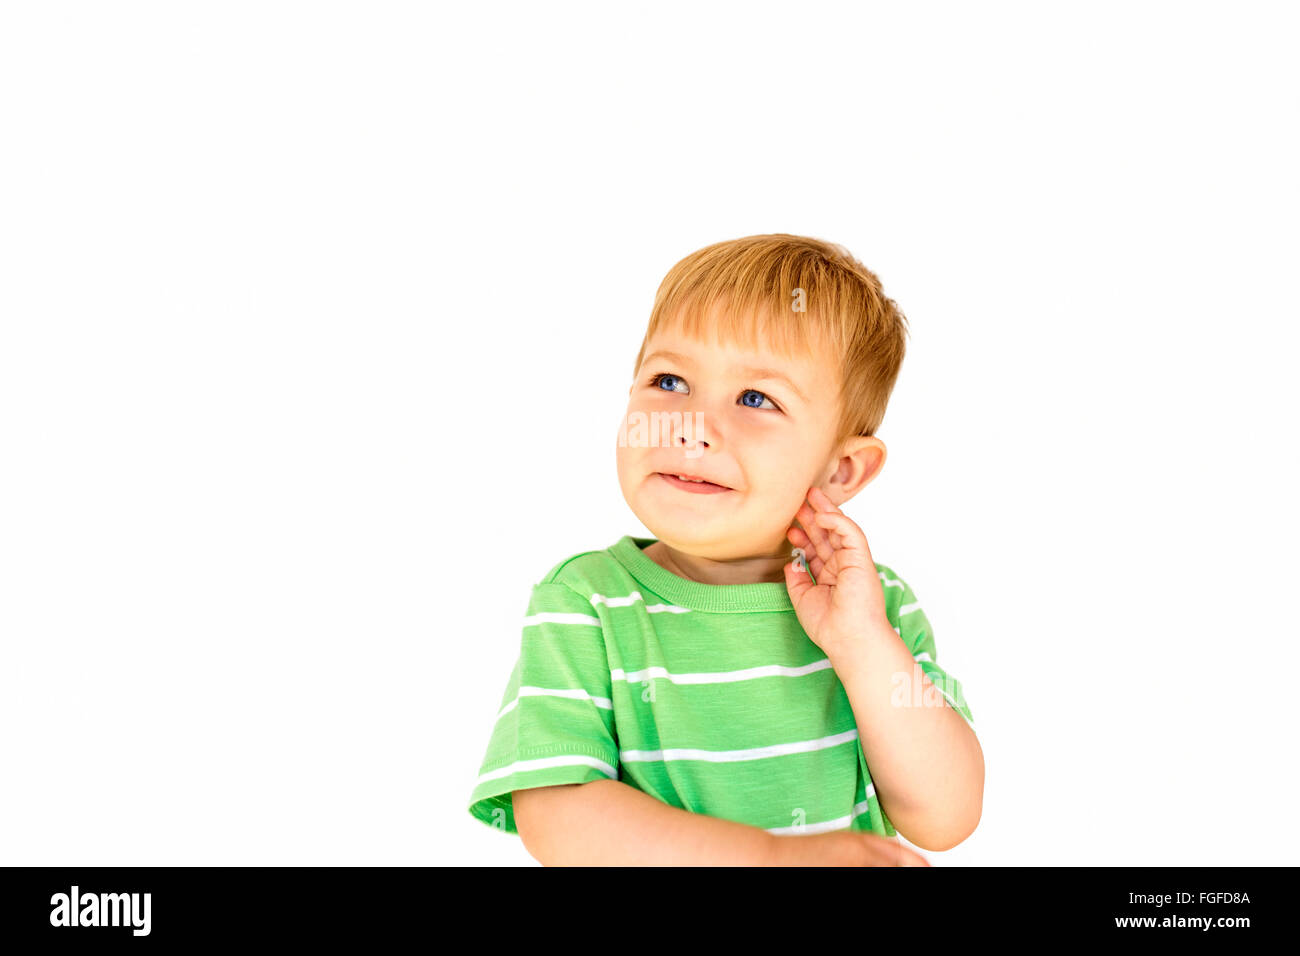 Young boy with blonde hair thinking - Stock Image